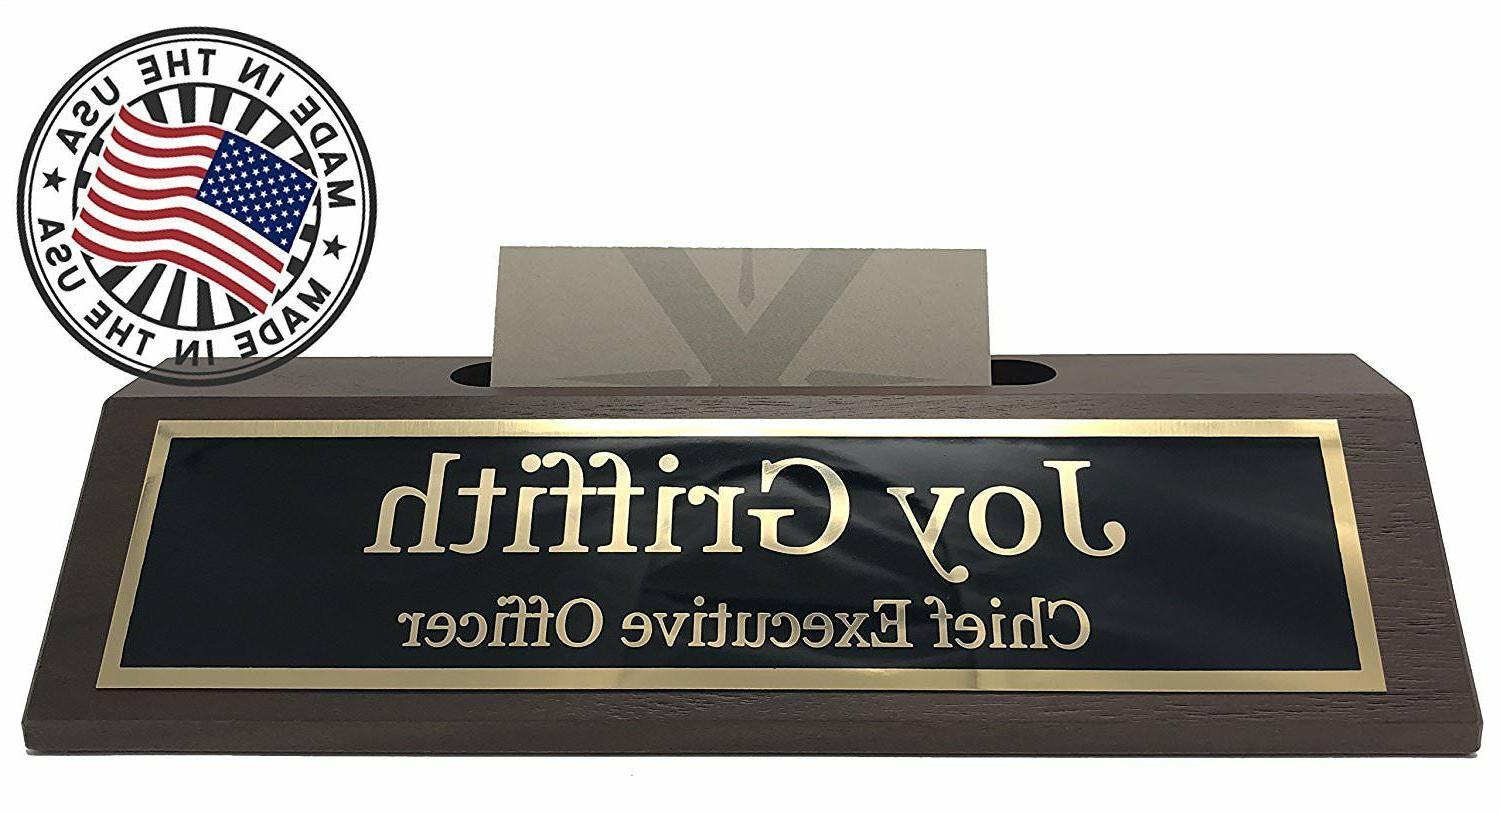 Personalized Business Desk Plate with Card Made in USA Wood